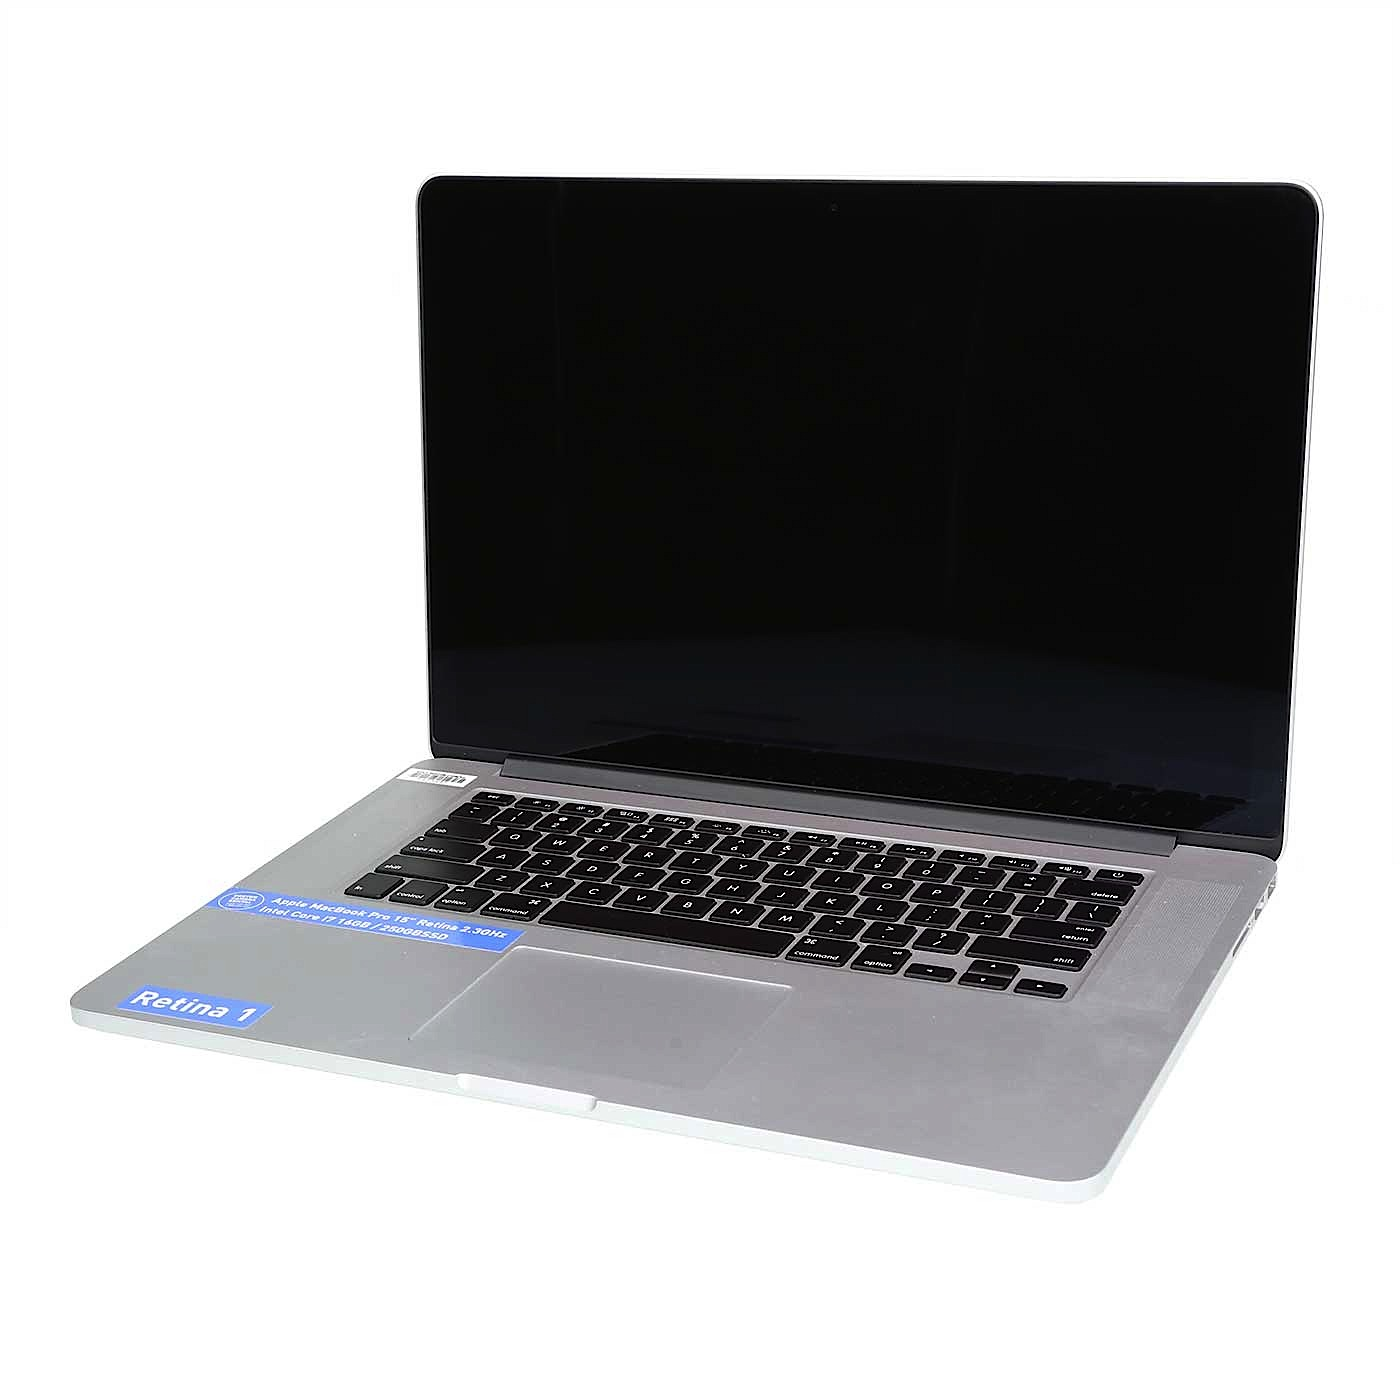 Apple Macbook Pro 15in Retina Laptop